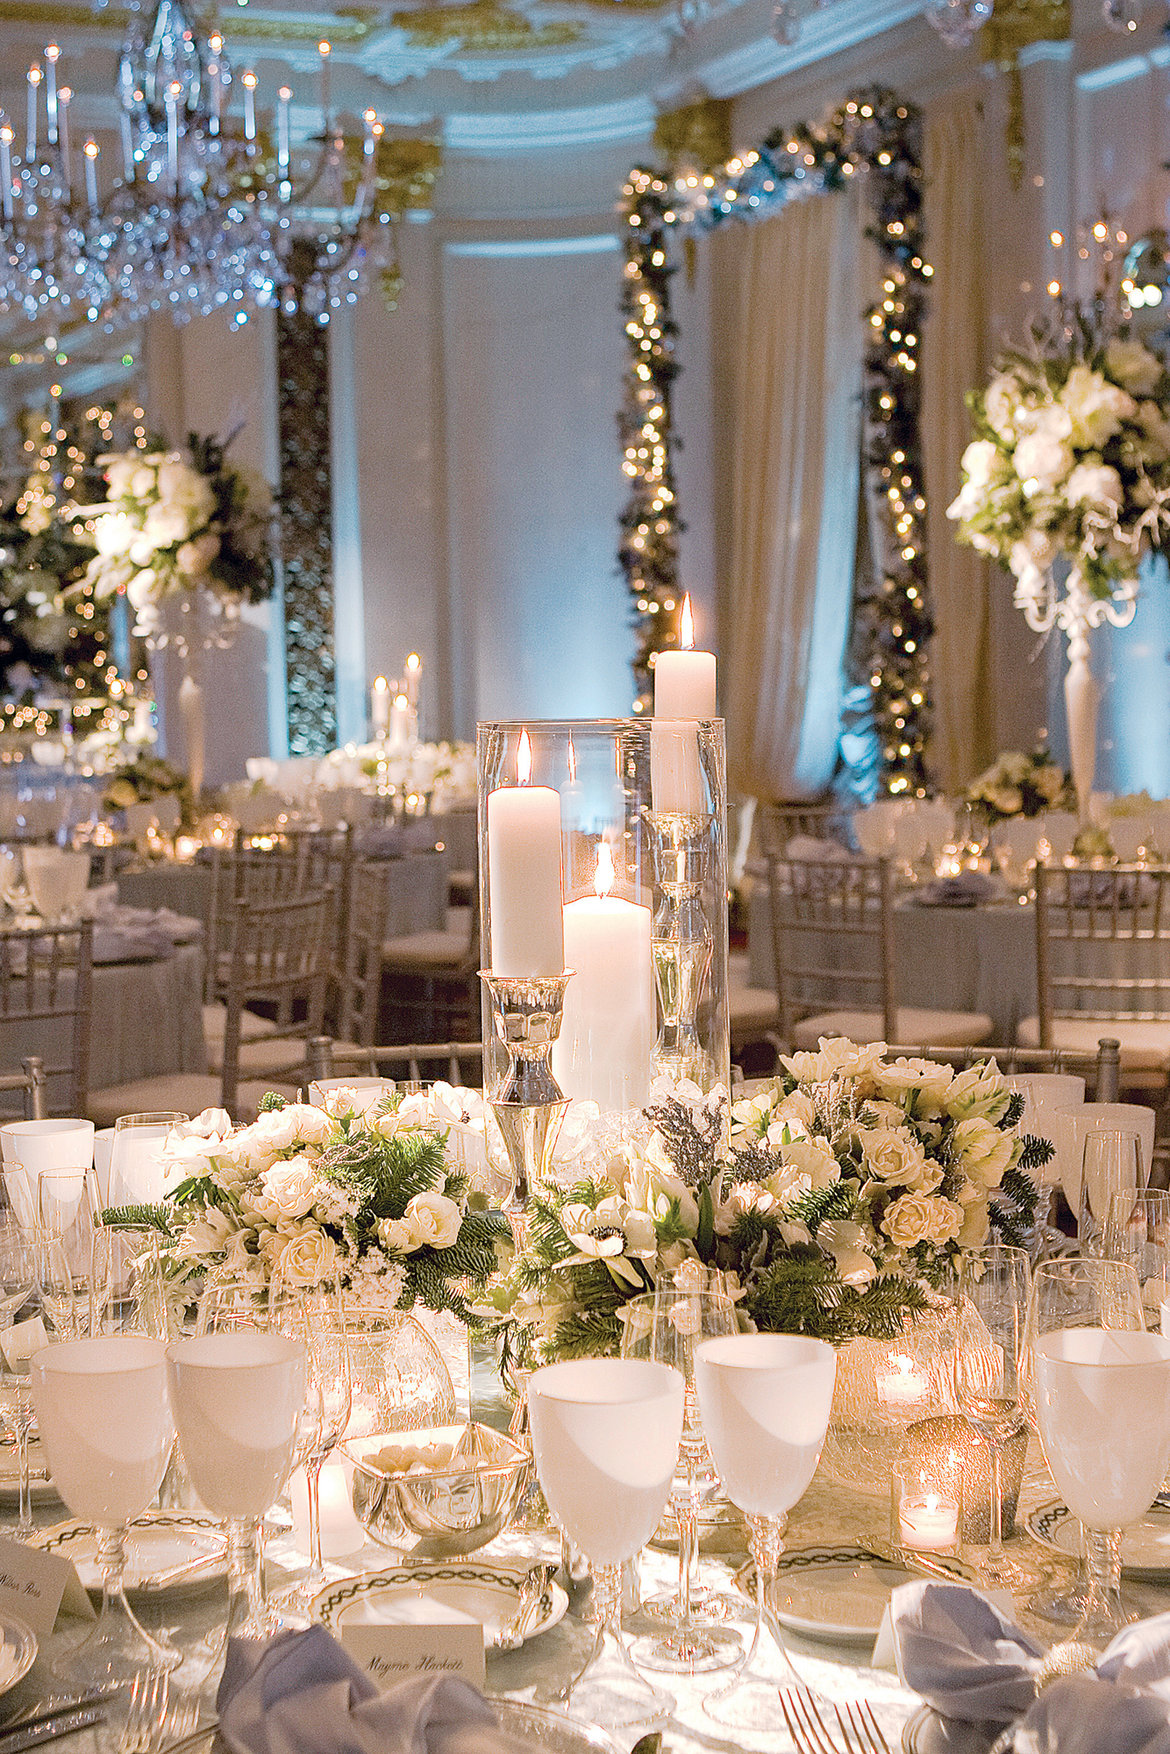 Find The Best Wedding Venue For Your Budget BridalGuide